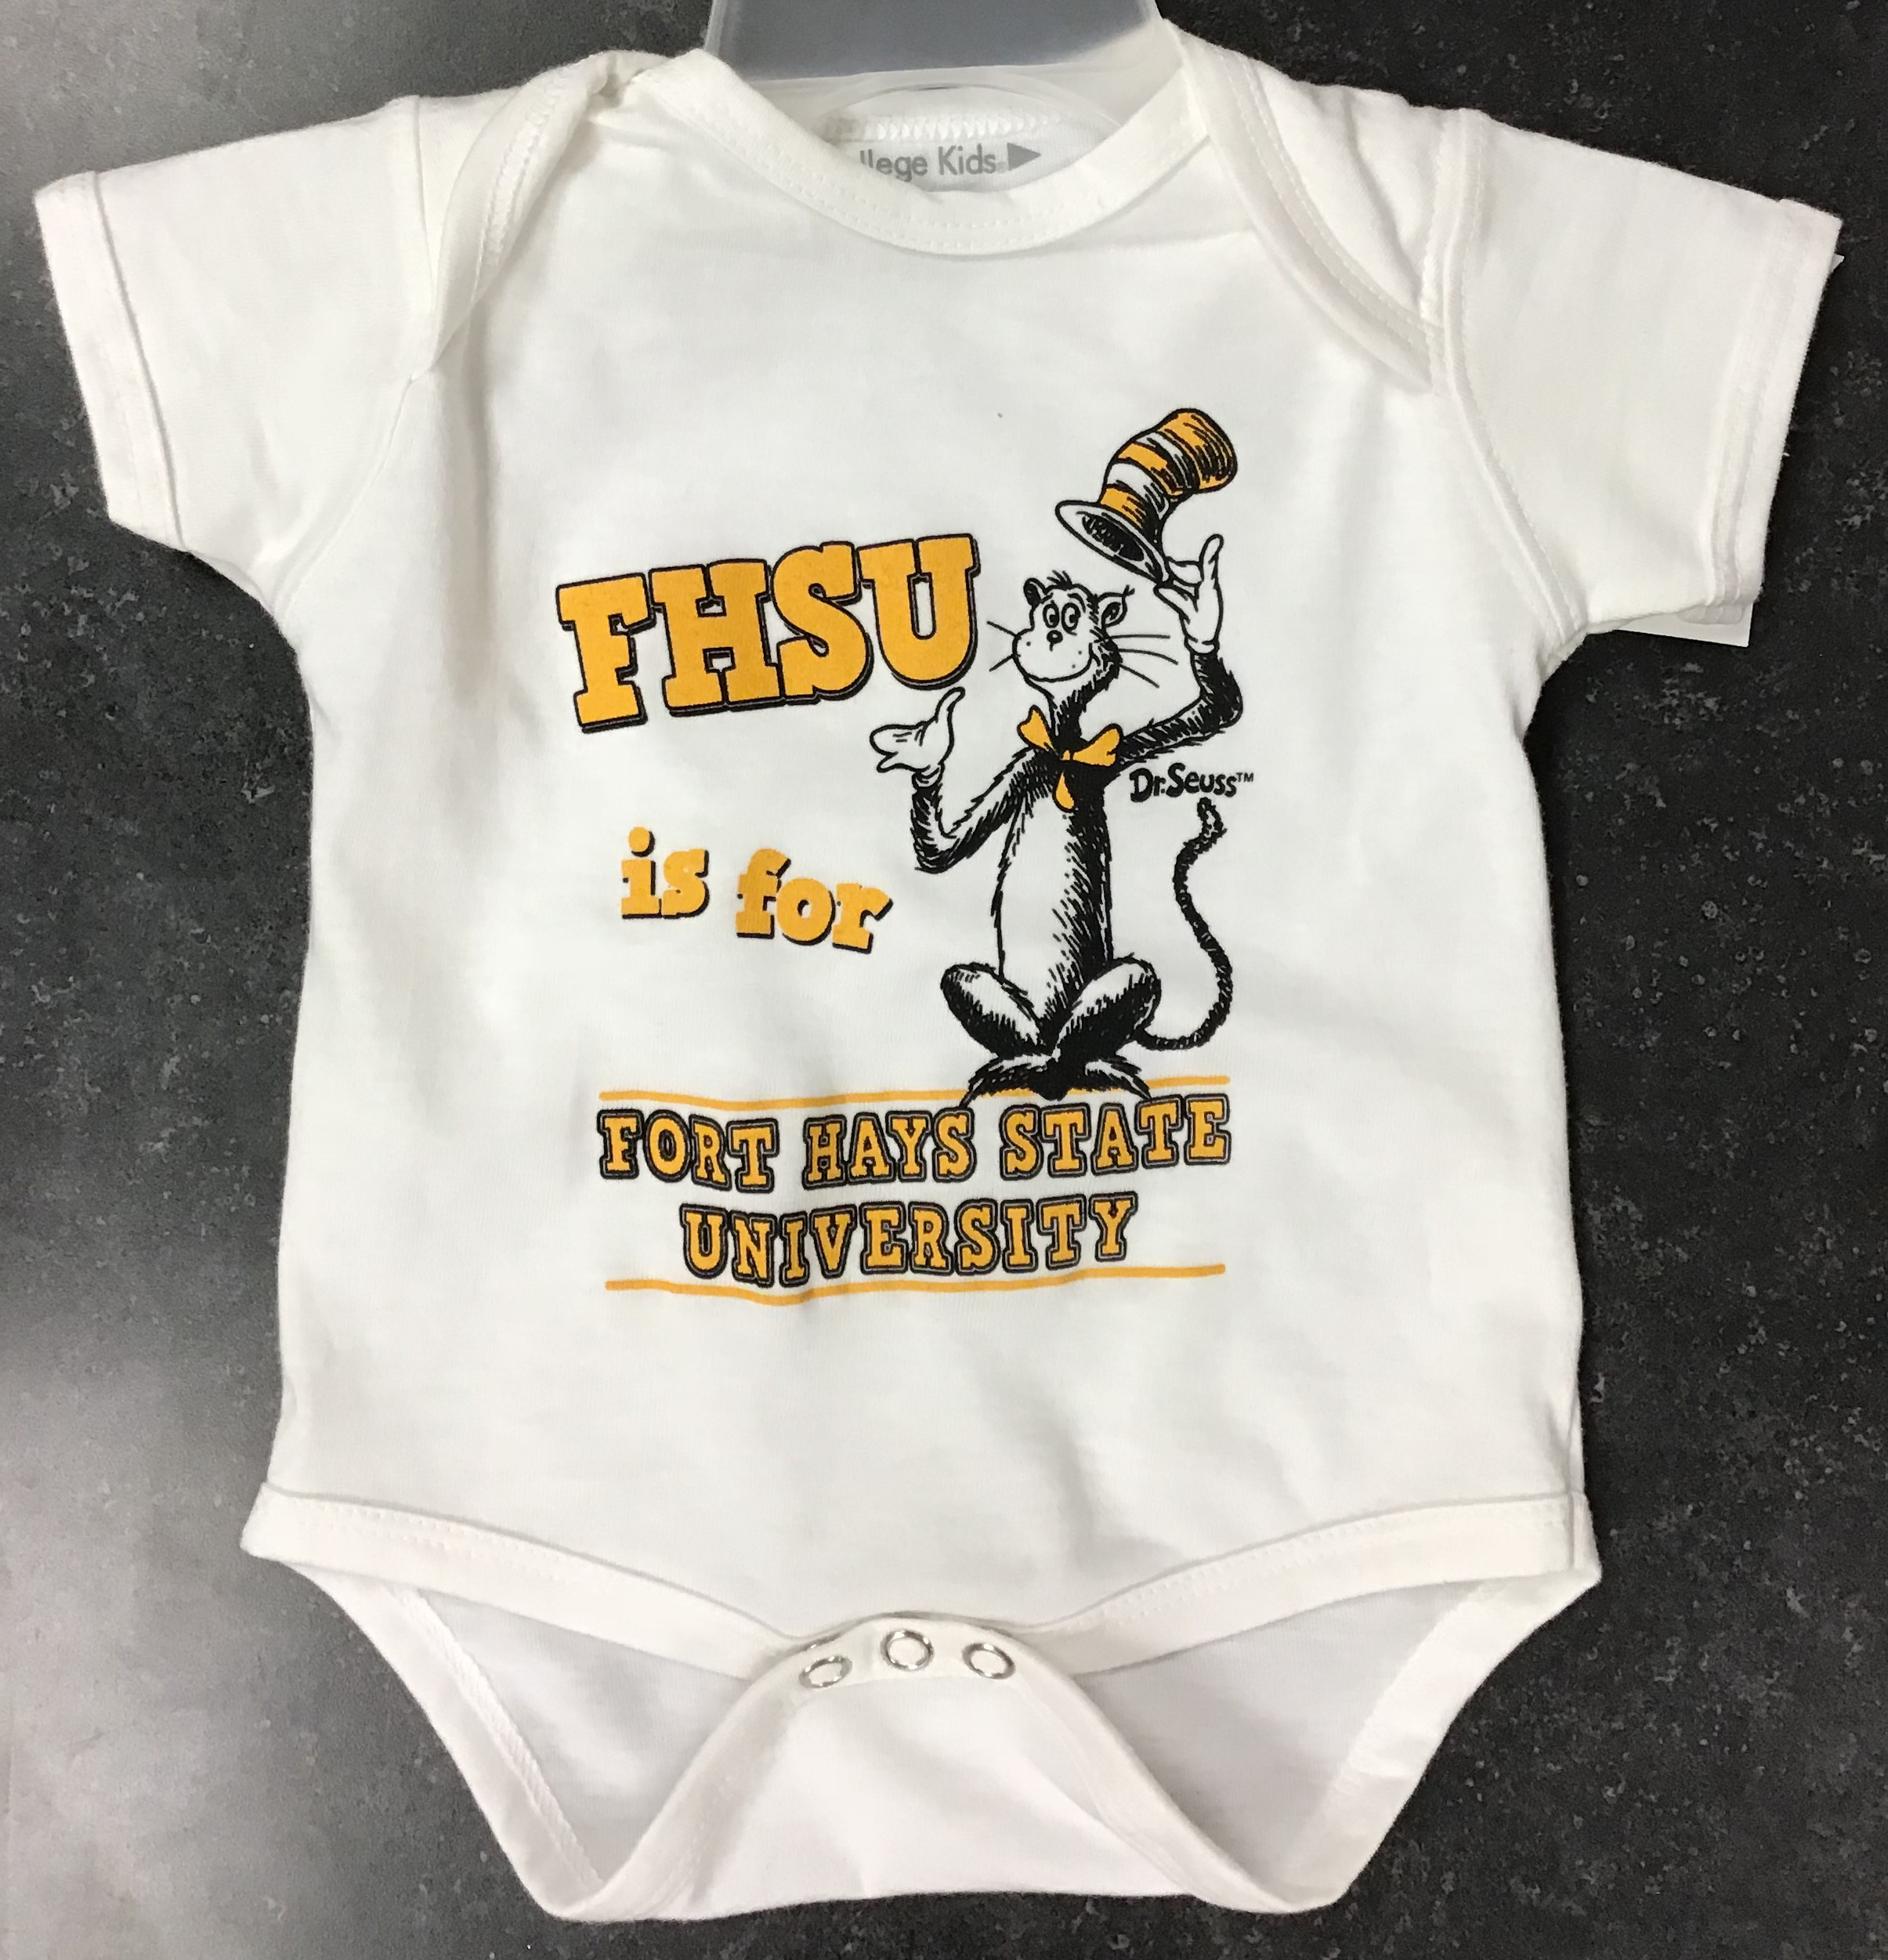 Image for the Dr. Seuss Onesie, White, College Kids 10802 product